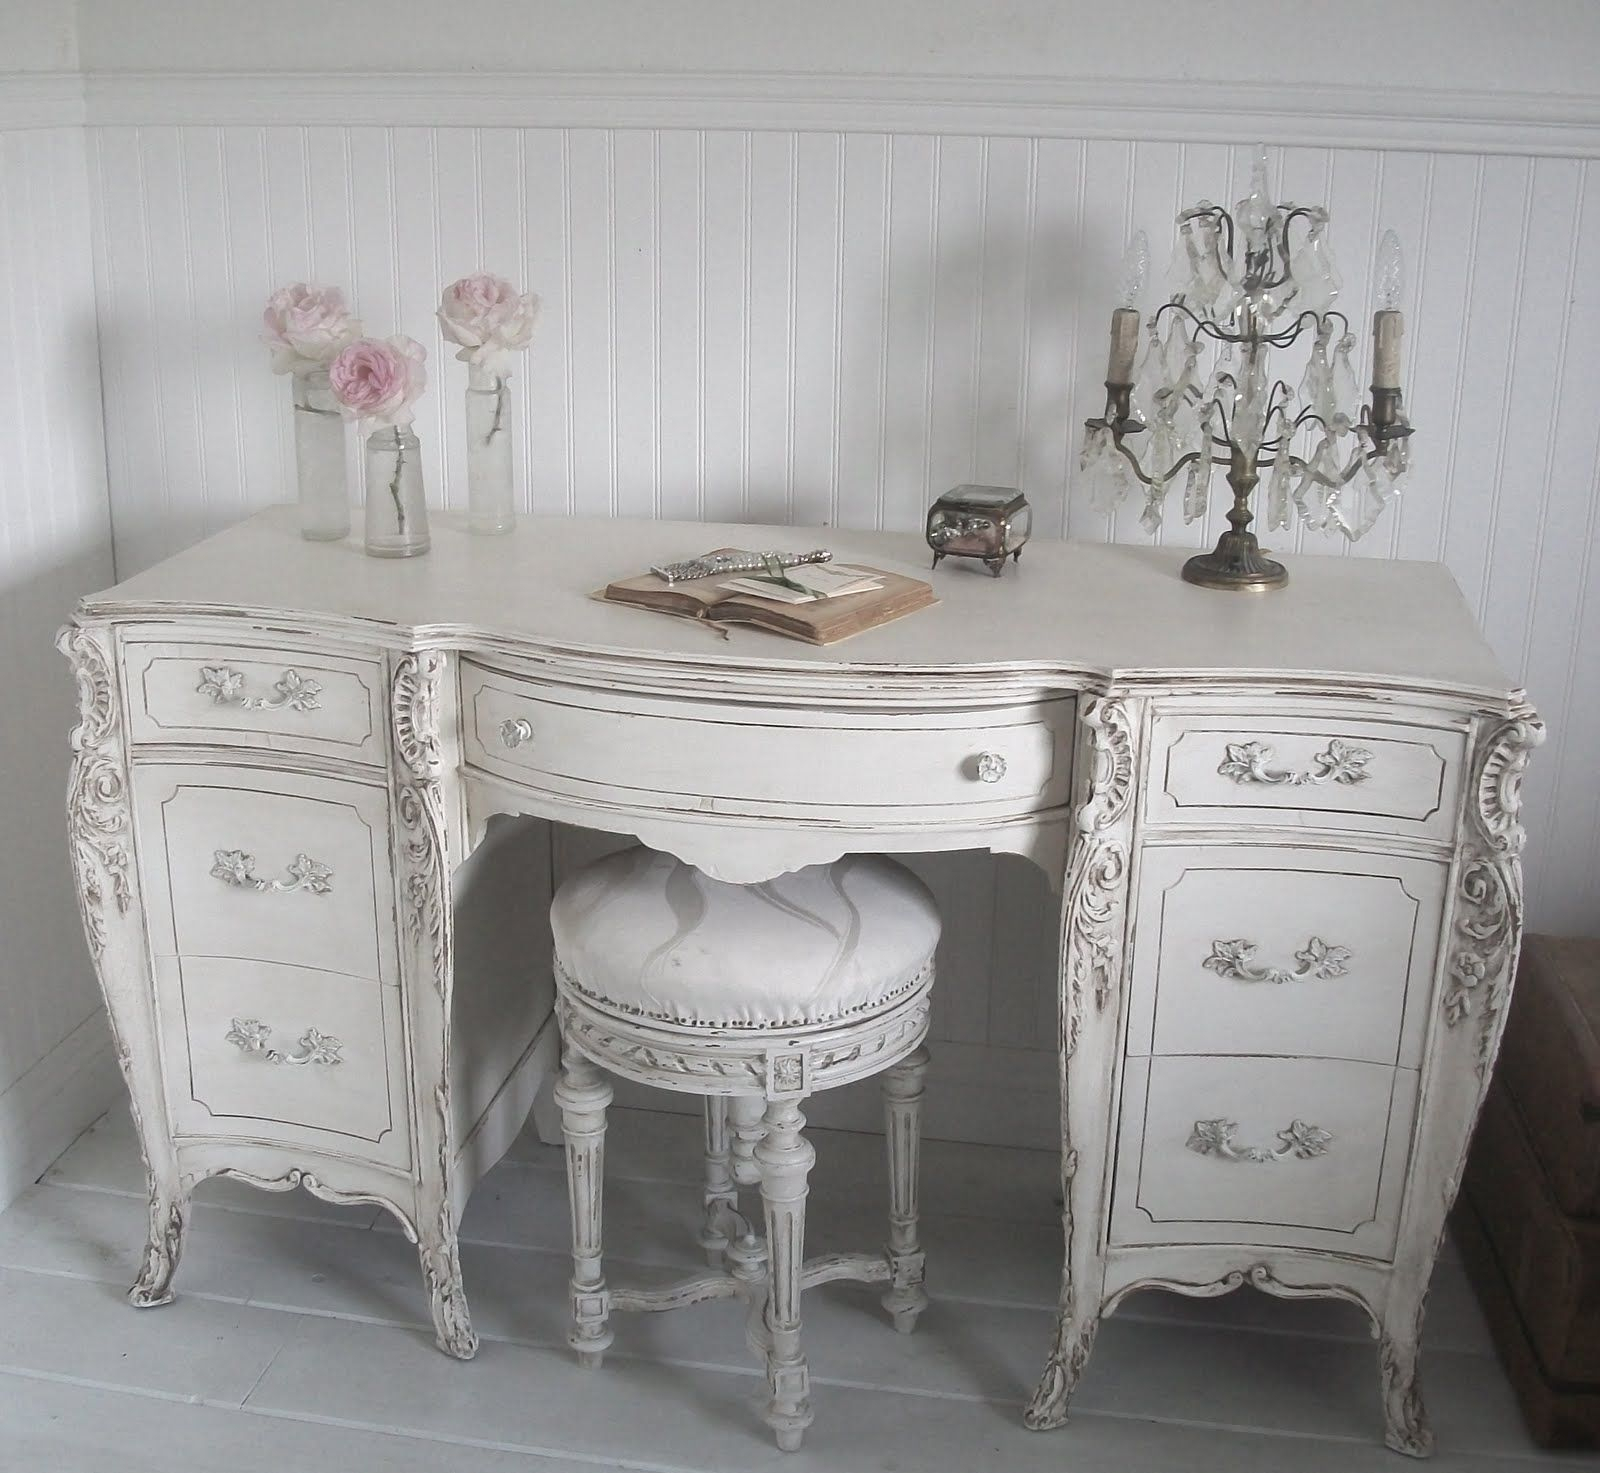 Full Bloom Cottage: French Furniture   Shabby Chic Within Shabby Chic Sofas (View 6 of 15)